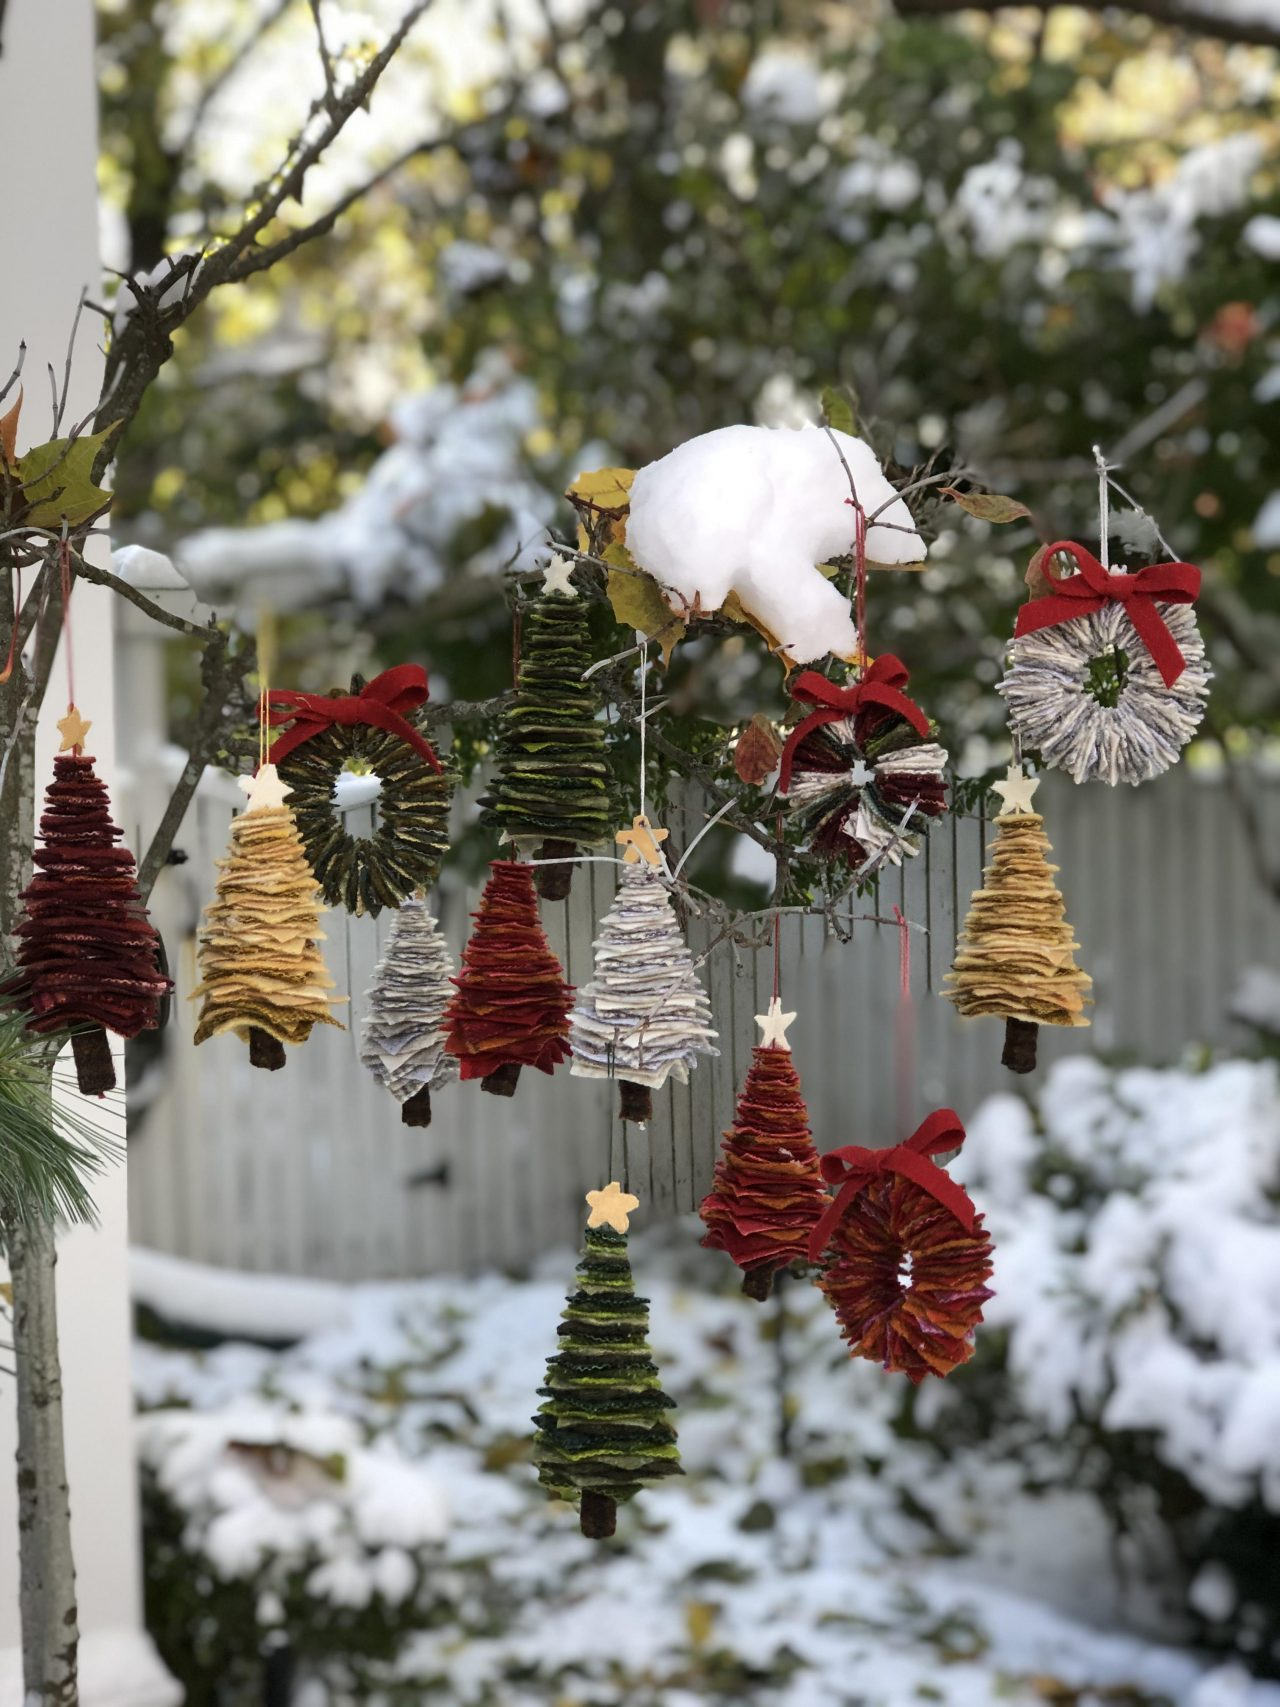 Mini textile christmas tree decorations hanging on a snowy tree by Yvonne Iten-Scott